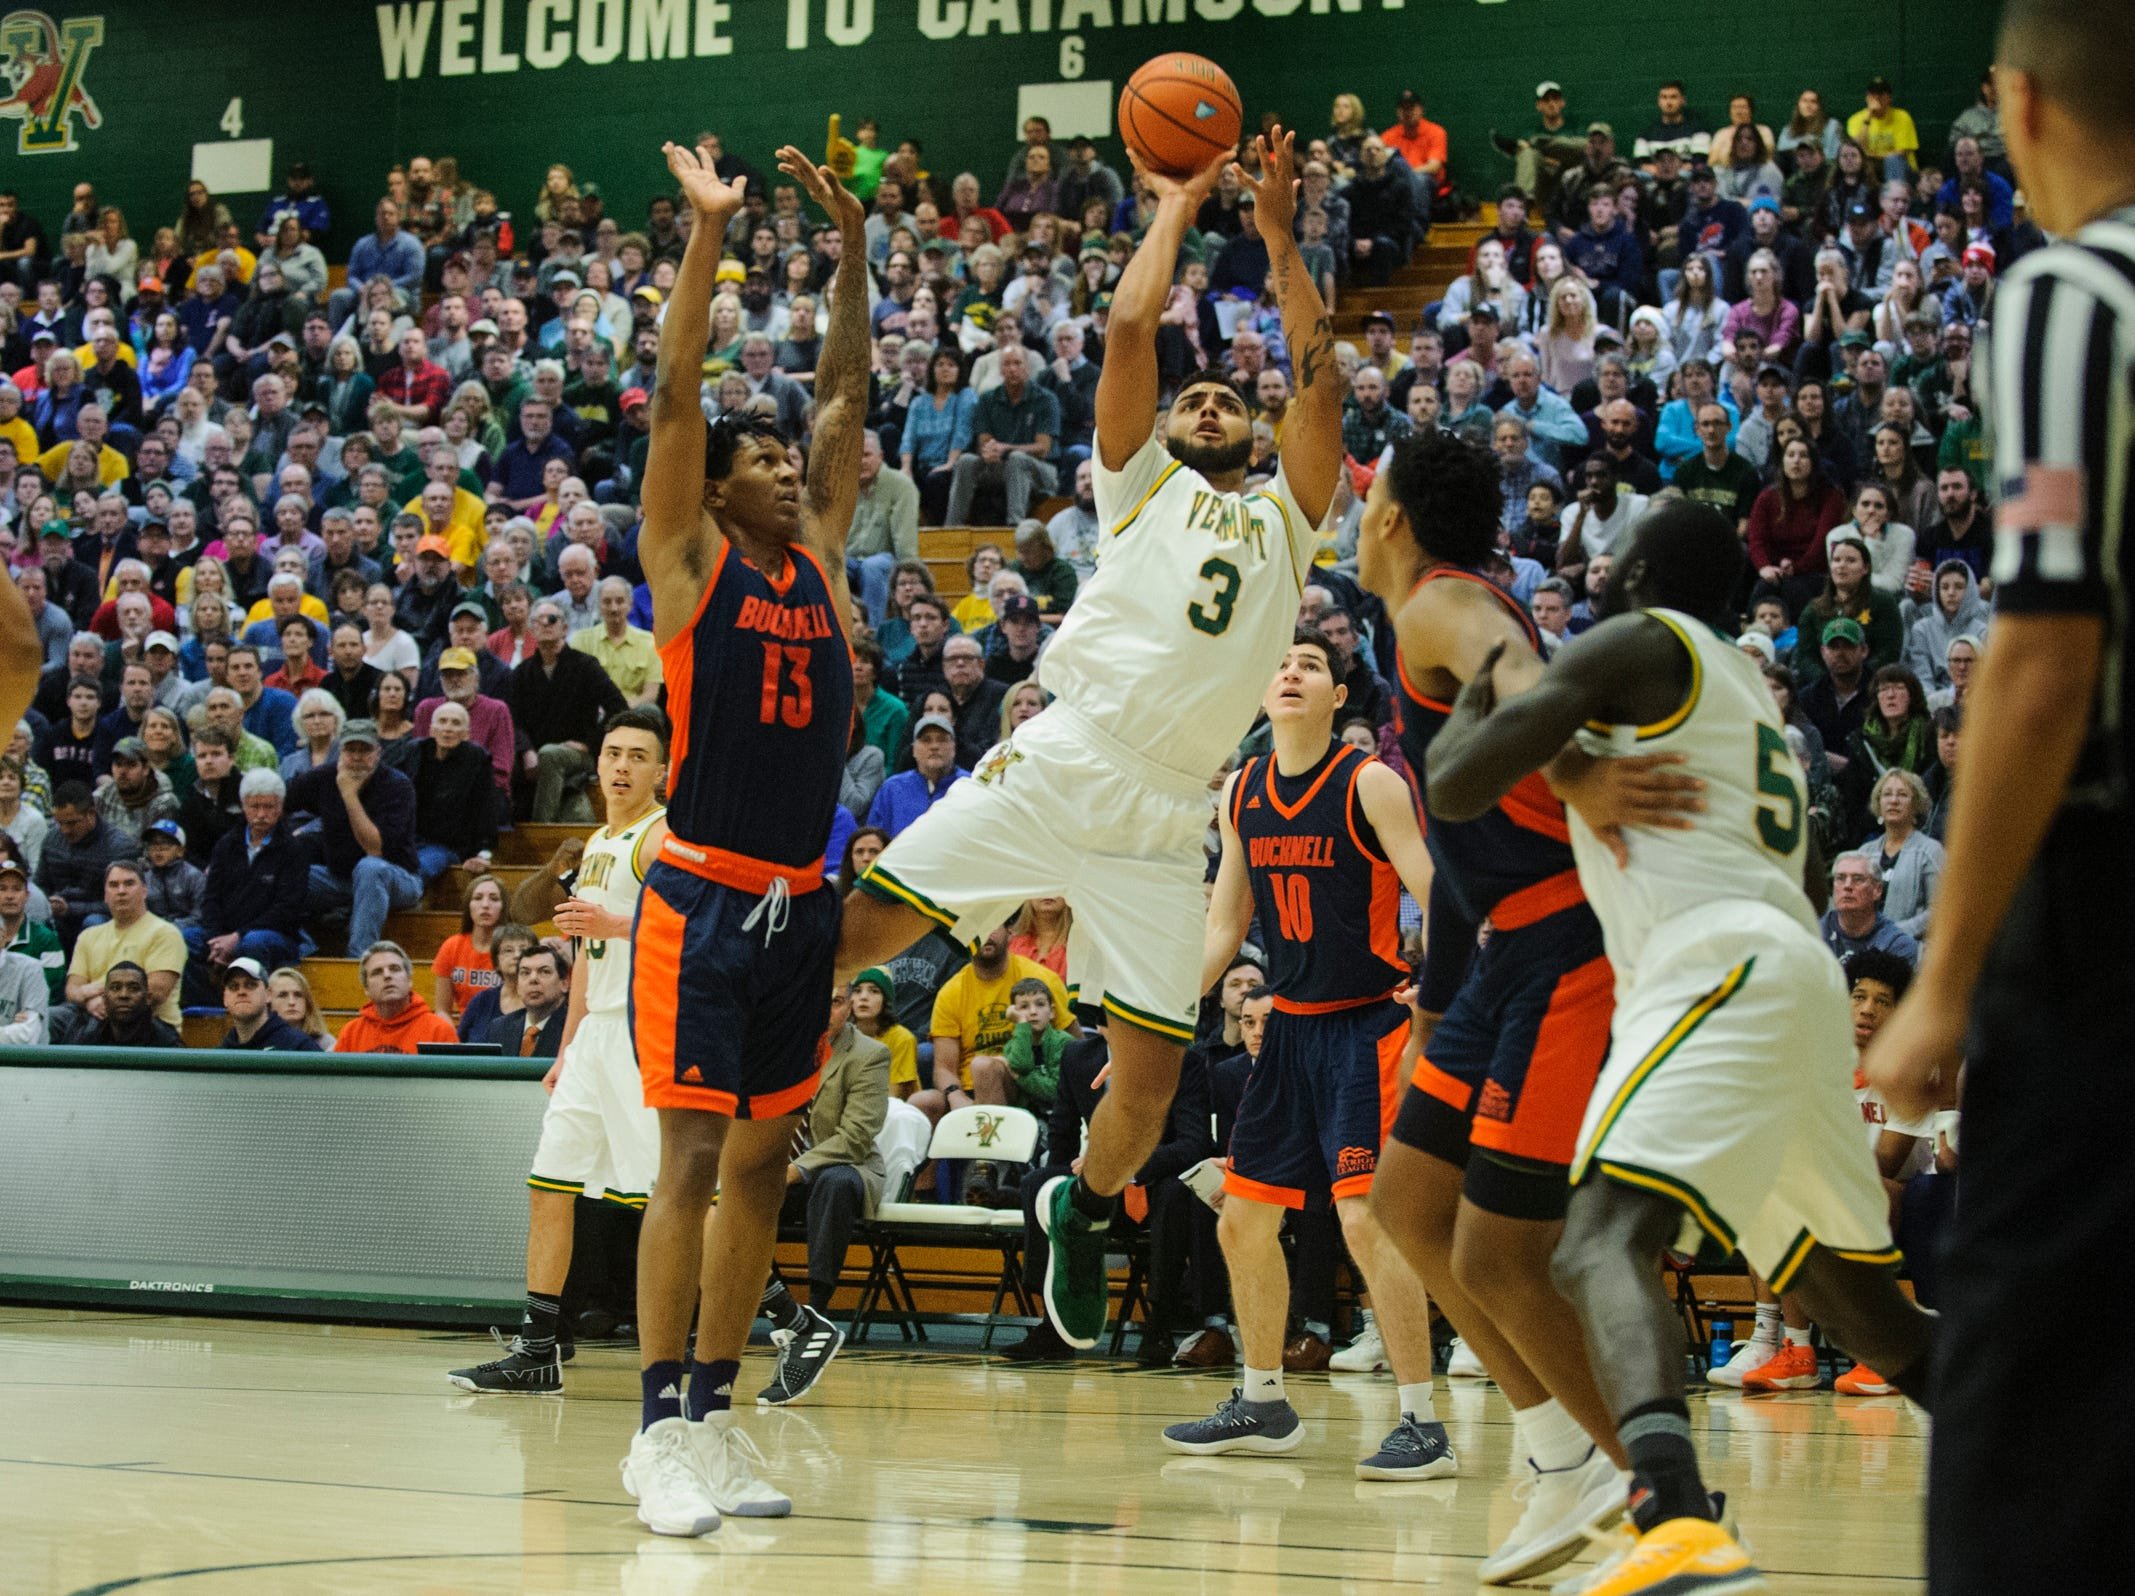 Vermont forward Anthony Lamb (3) takes a shot during the men's basketball game between the Bucknell Bison and the Vermont Catamounts at Patrick Gym on Sunday afternoon November 25, 2018 in Burlington.